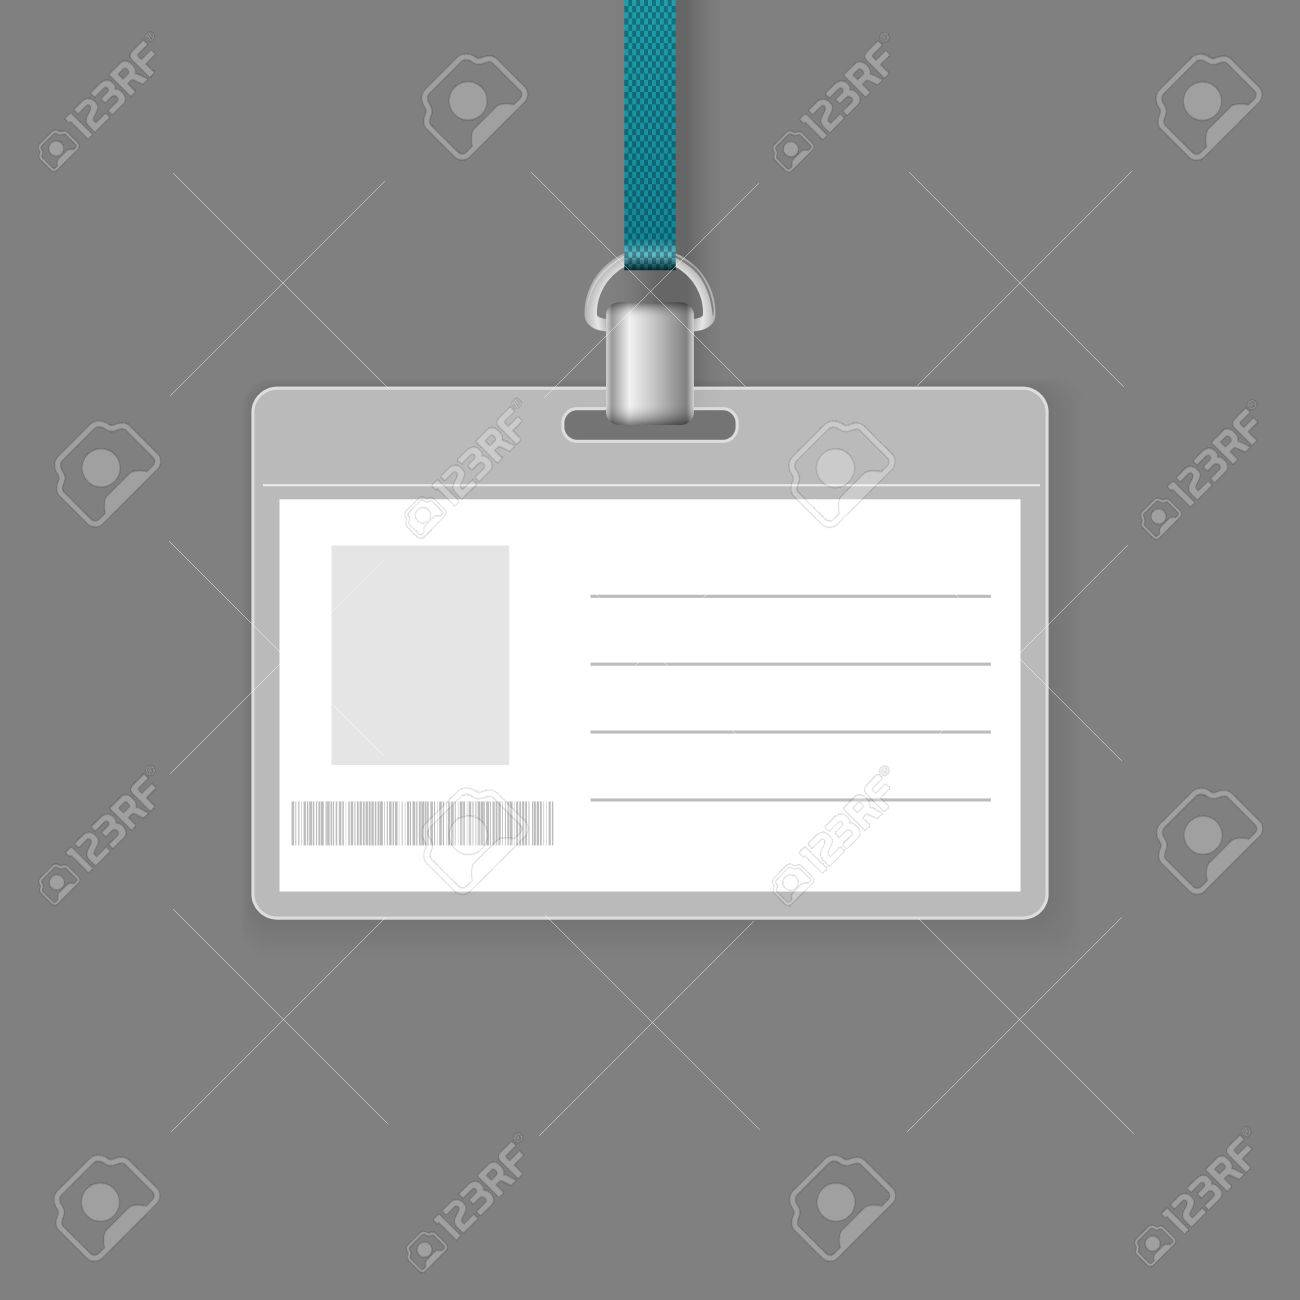 Blank ID Badge Vector Template Isolated On Grey Background Royalty – Id Badge Template